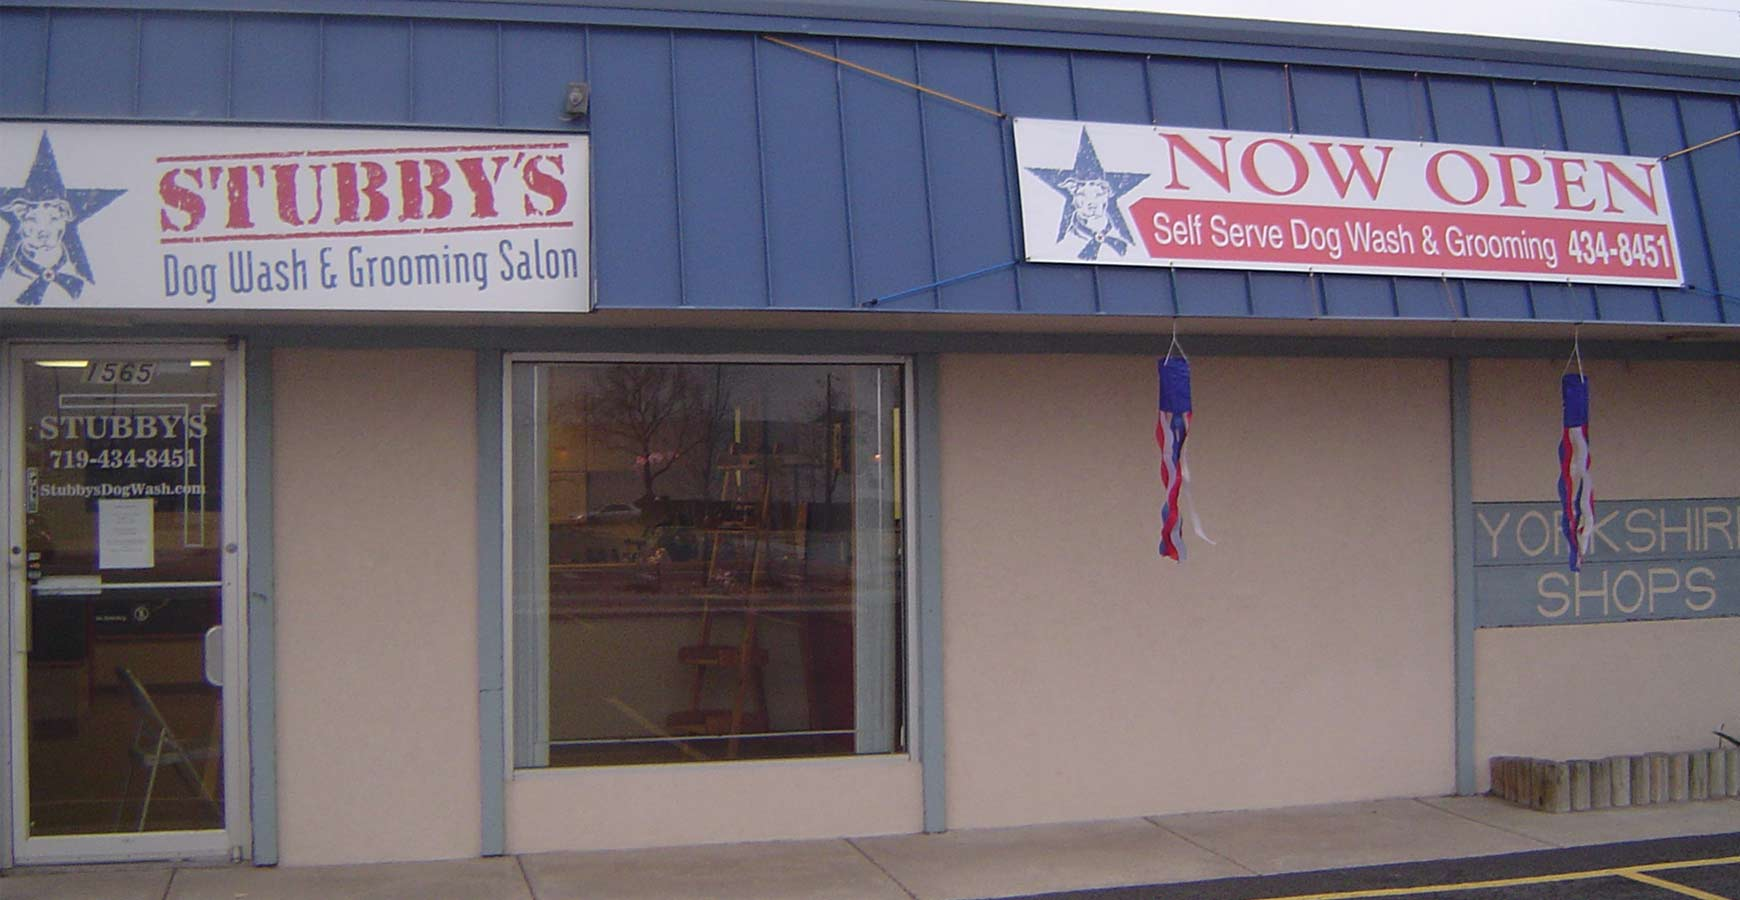 Exterior of Stubby's Dog Wash